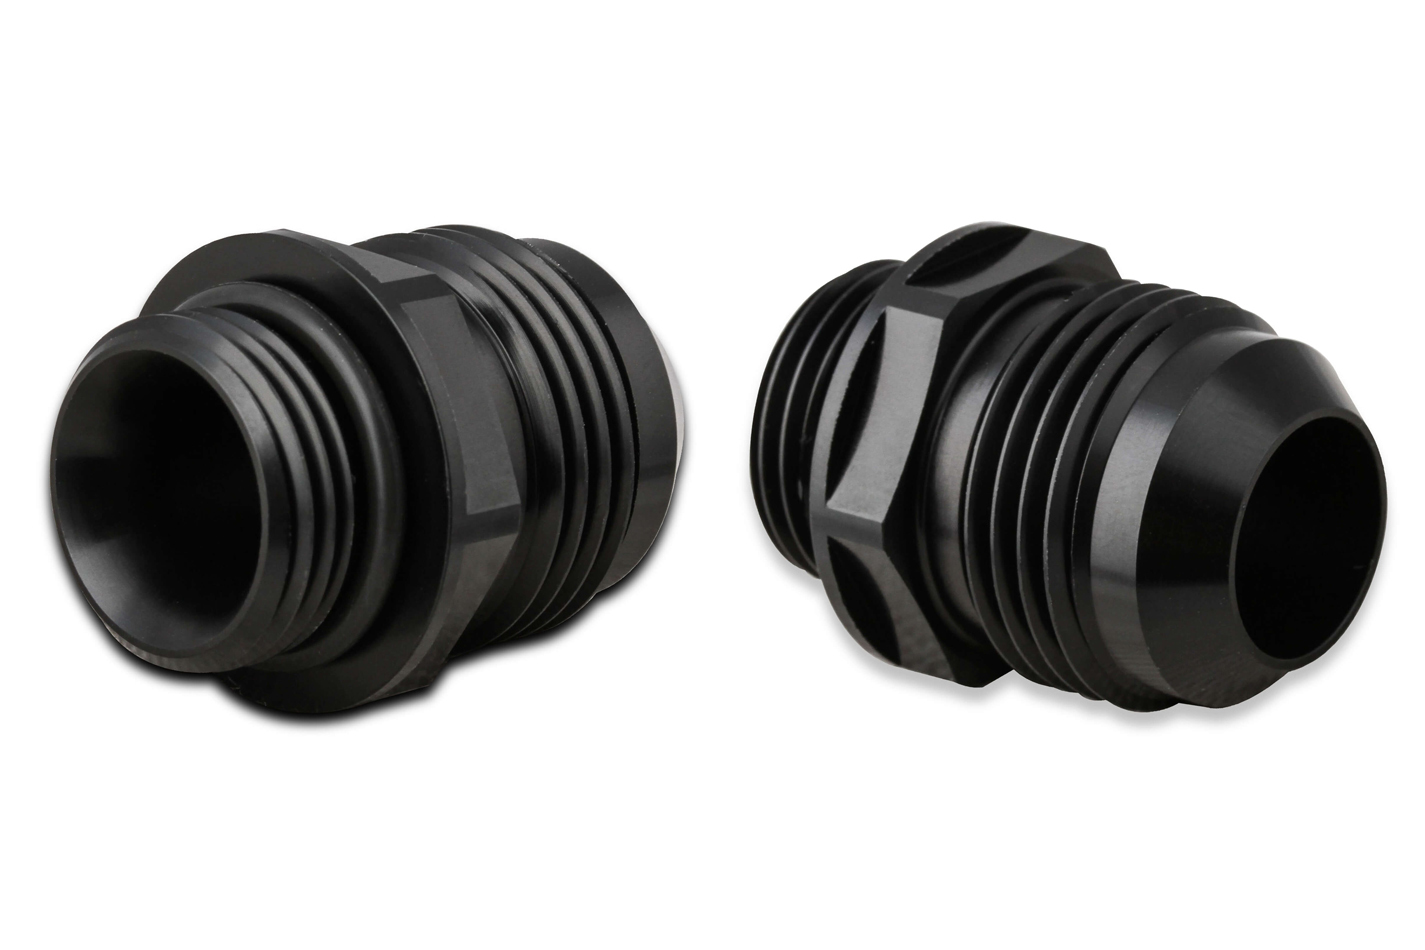 Earls AT585112ERL Fitting, Adapter, Straight, 12 AN Male to 10 AN Male O-Ring, Aluminum, Black Anodize, Pair